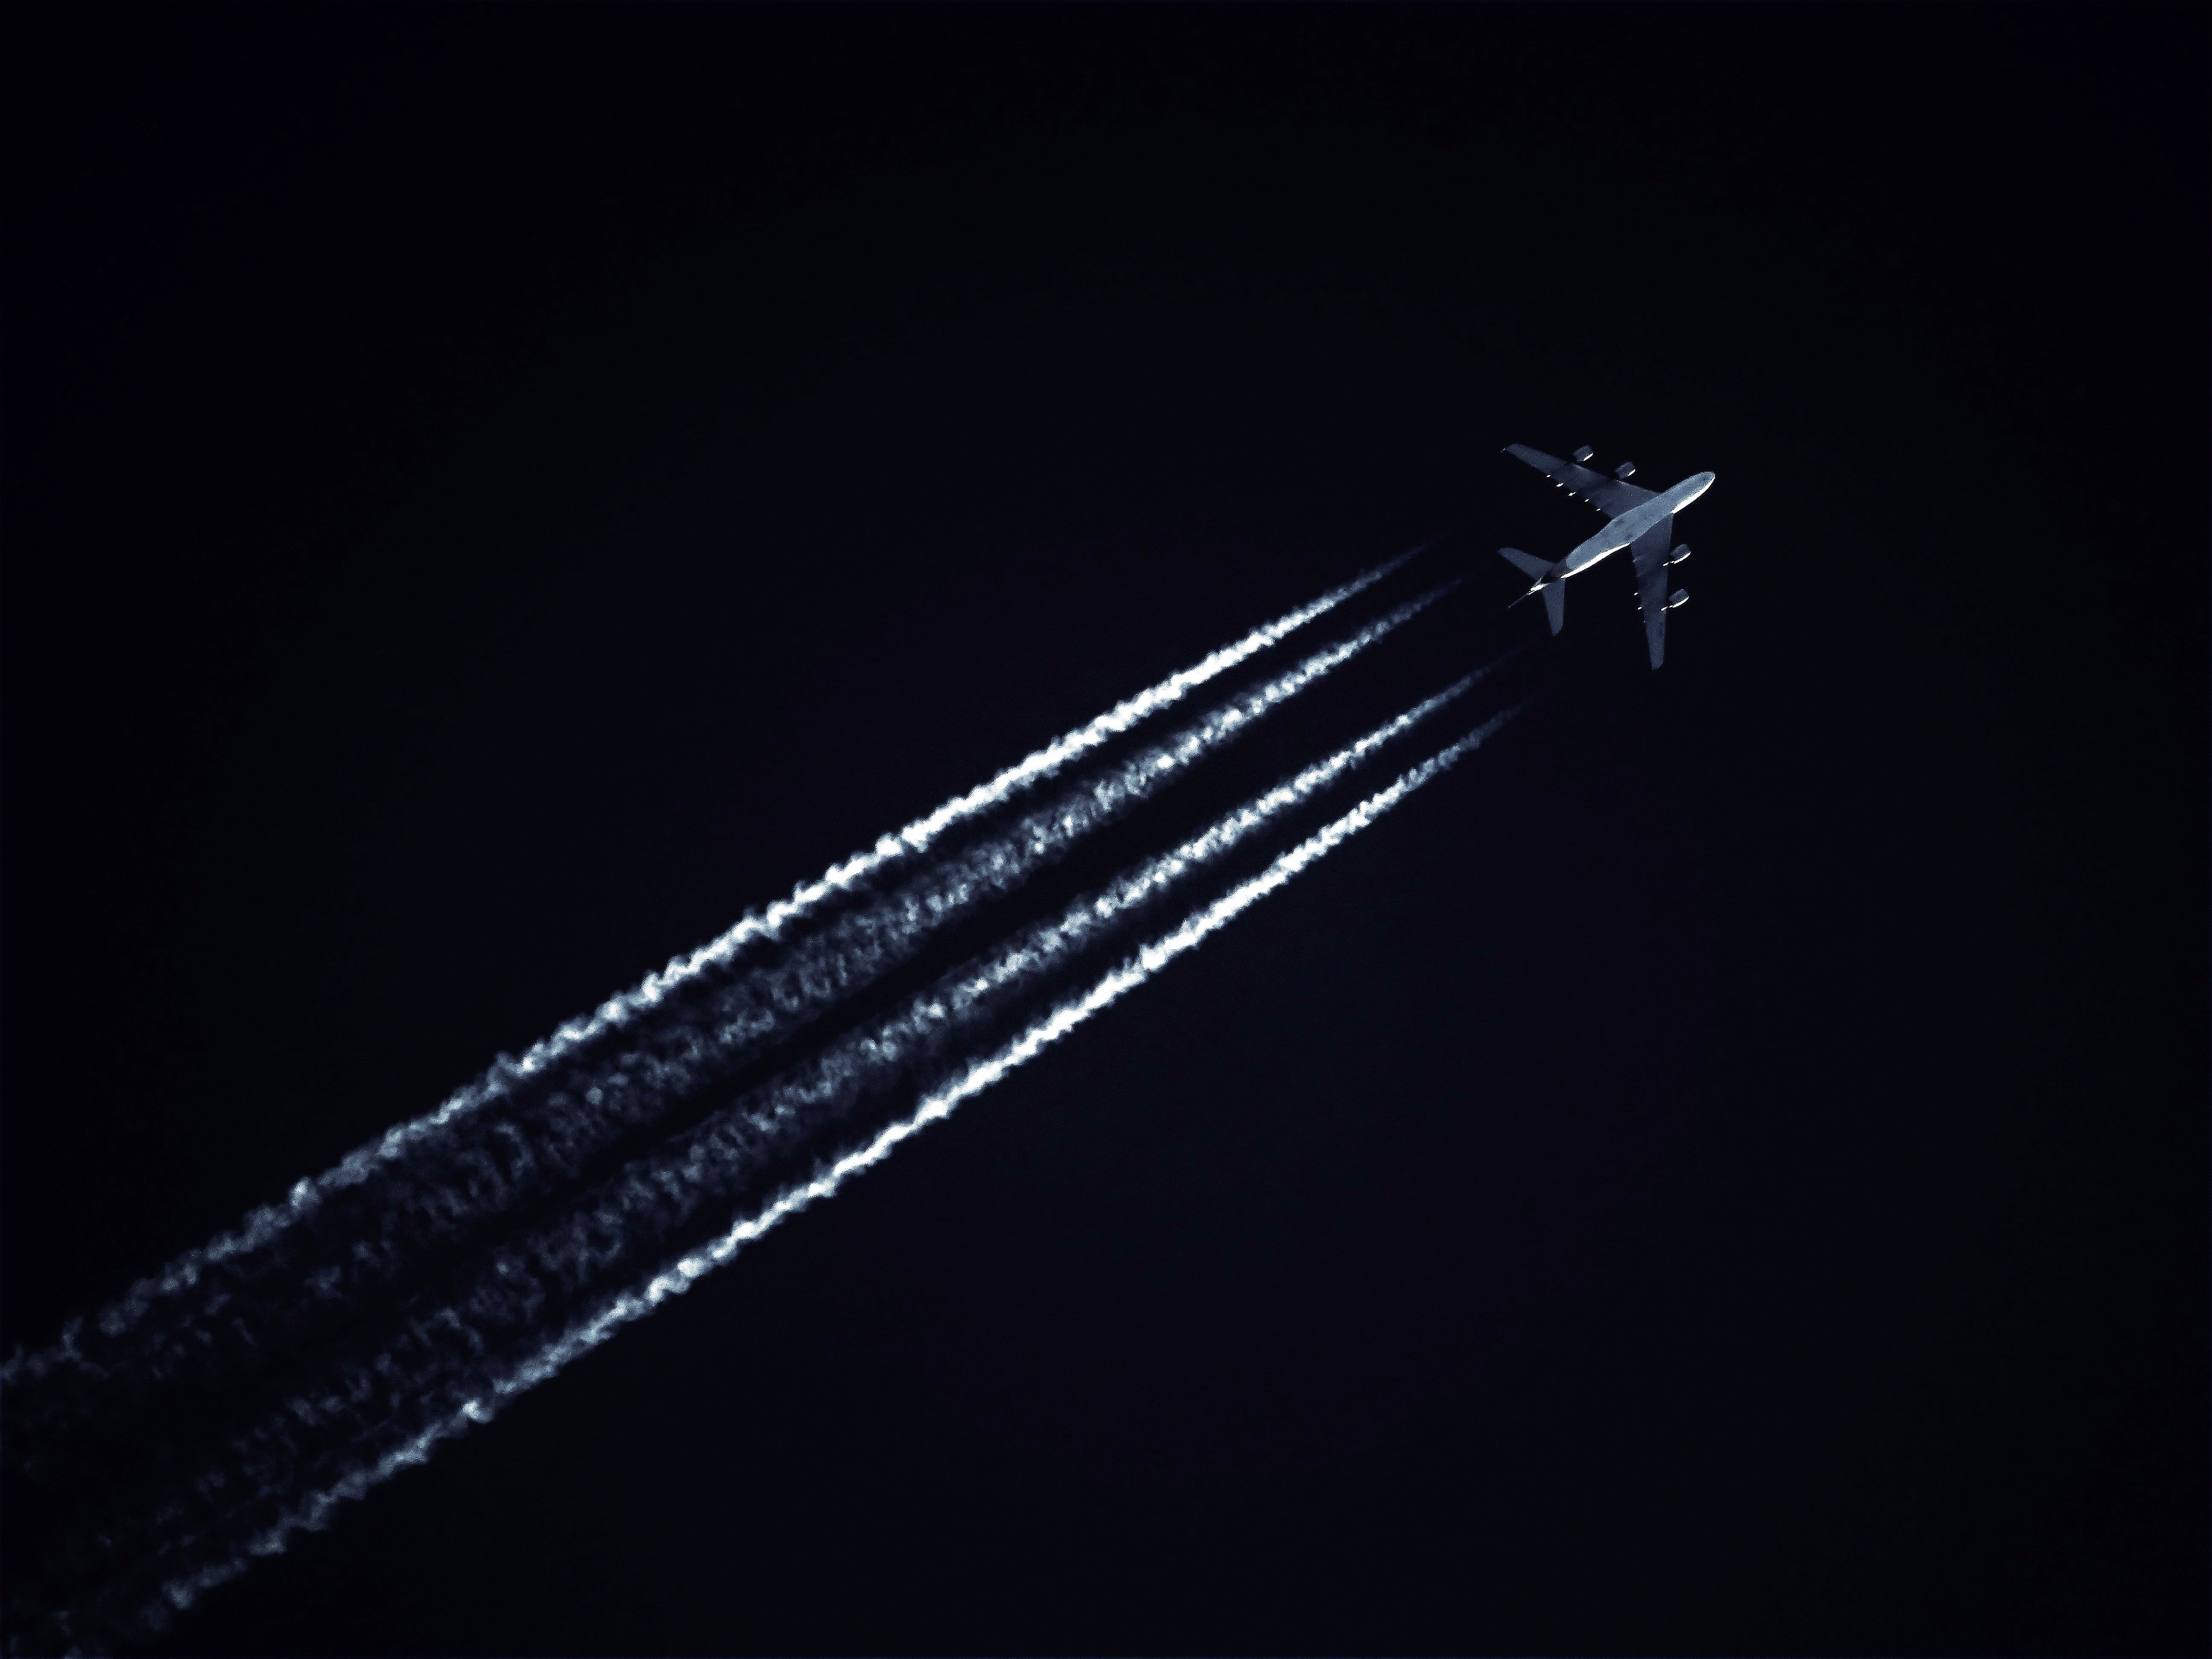 Photo-of-airplane-during-evening-2091321